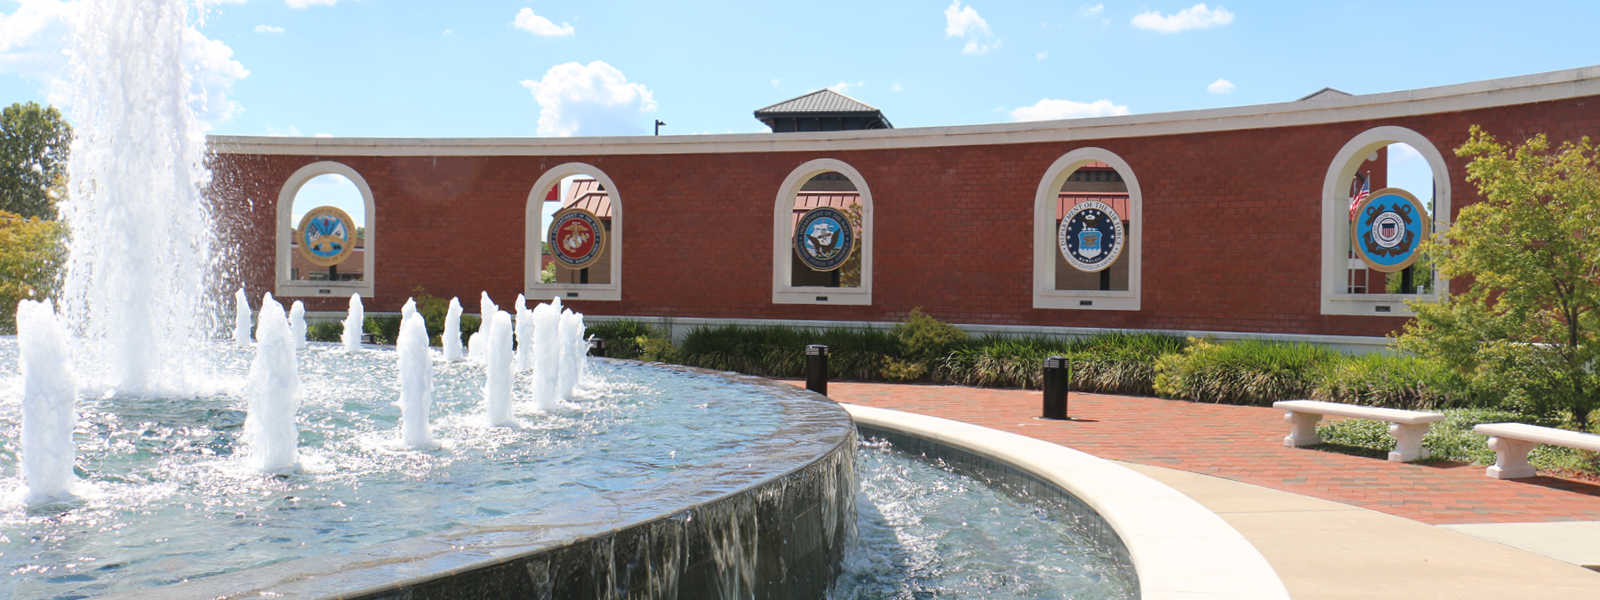 The Freedom Fountain honors all who have passed through our Community in service to their Country